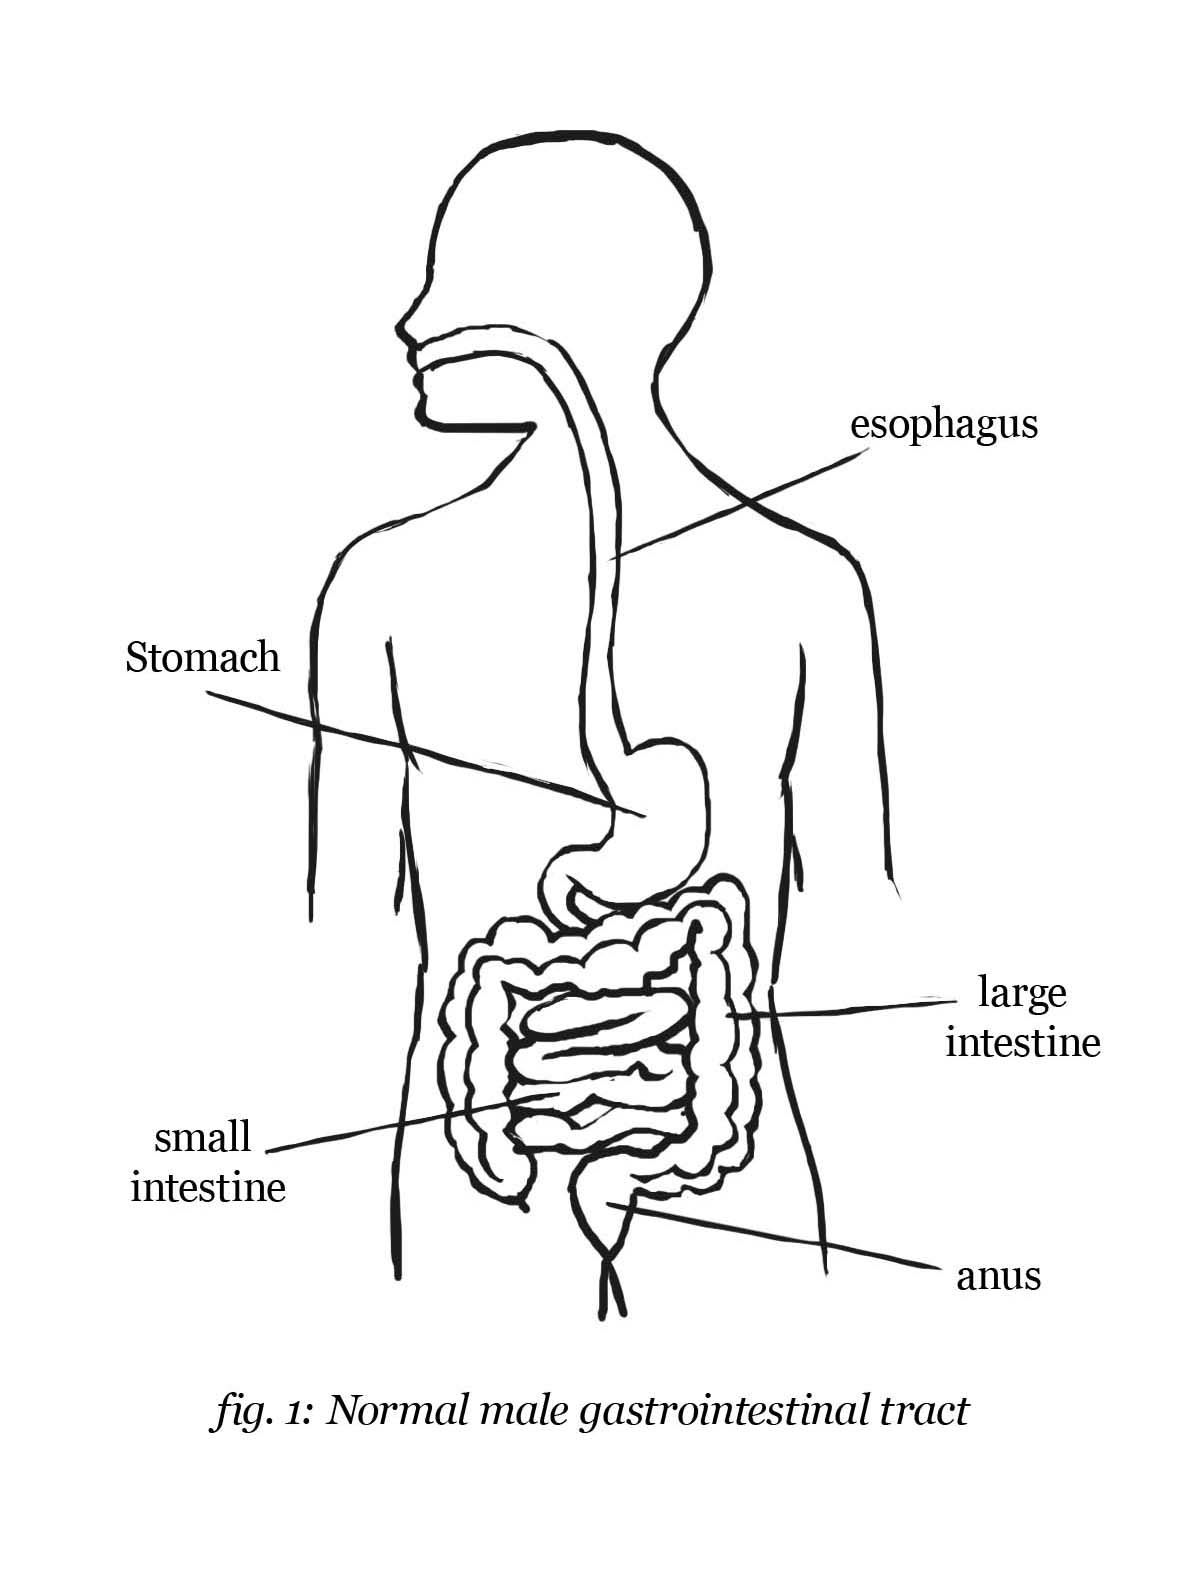 coloring pages digestive system - photo#8